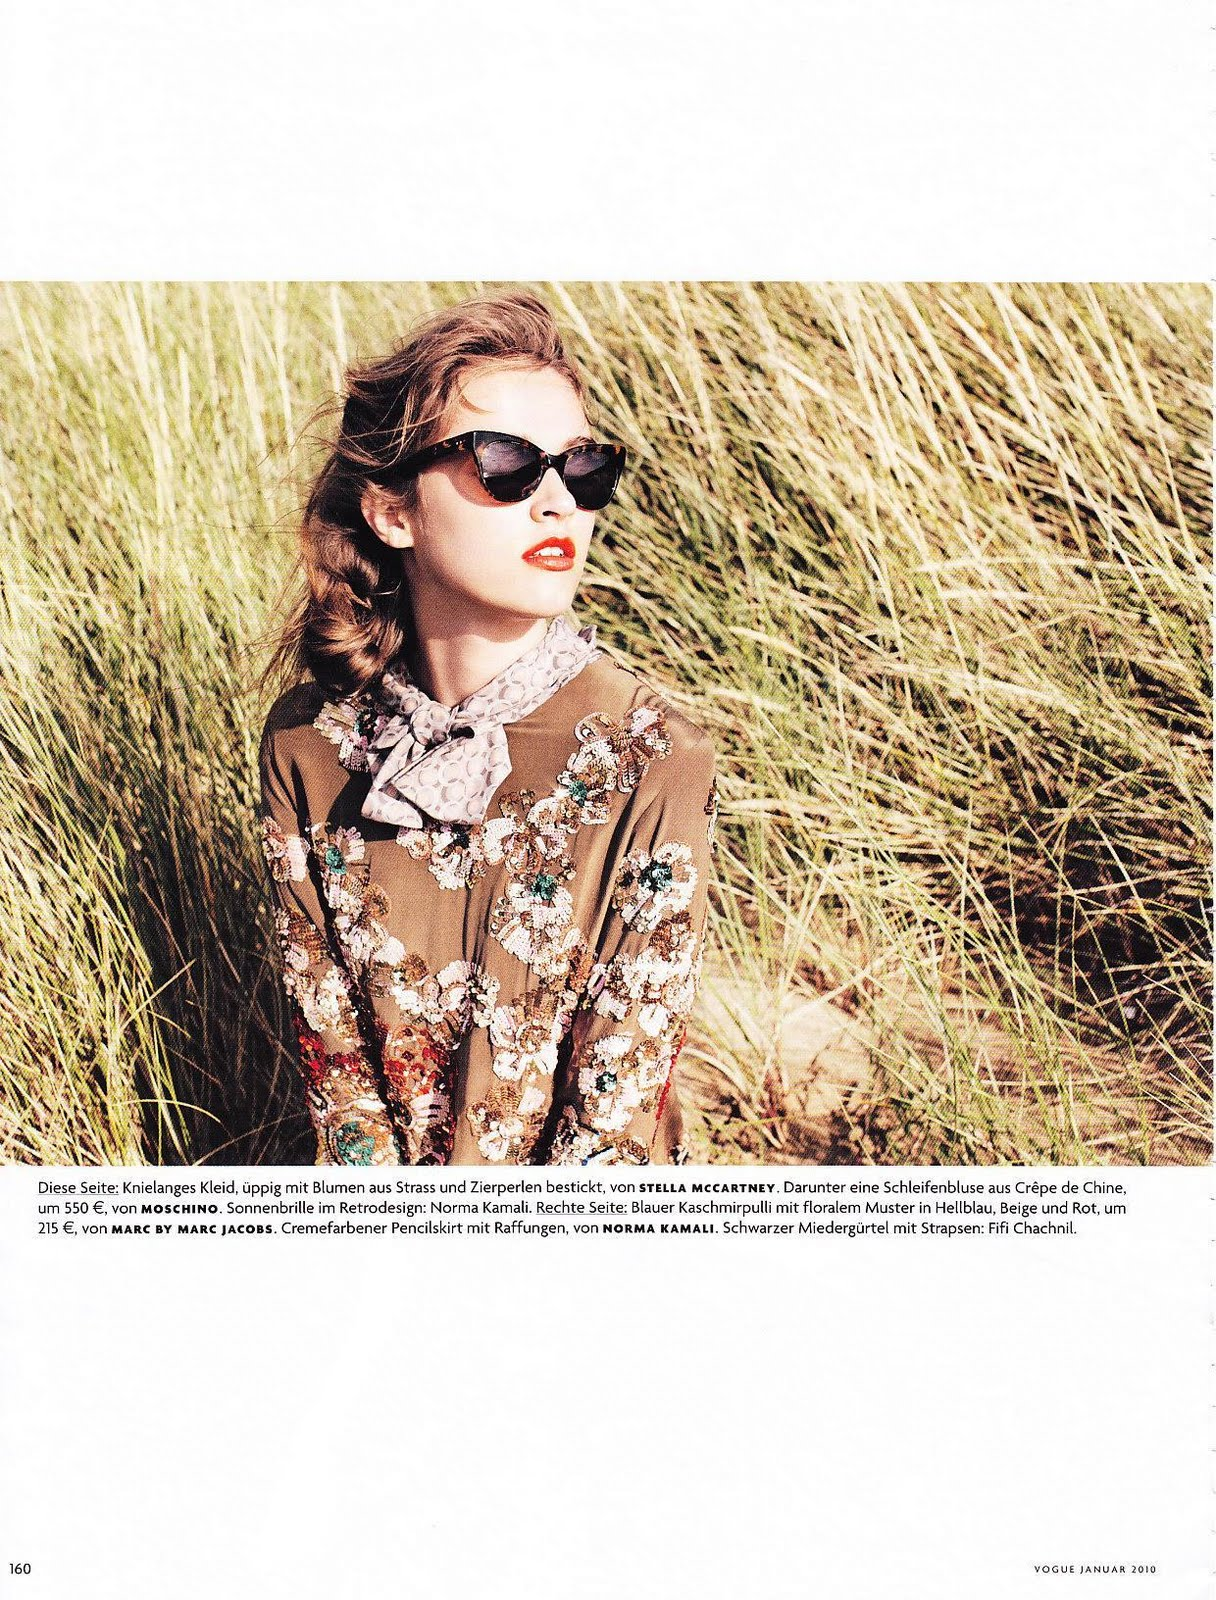 http://3.bp.blogspot.com/_PYqHLh0dSJ4/TA2QbS9KhNI/AAAAAAAAFcc/2-OcIZW6iXo/s1600/Vogue+Germany+January+2010.jpg